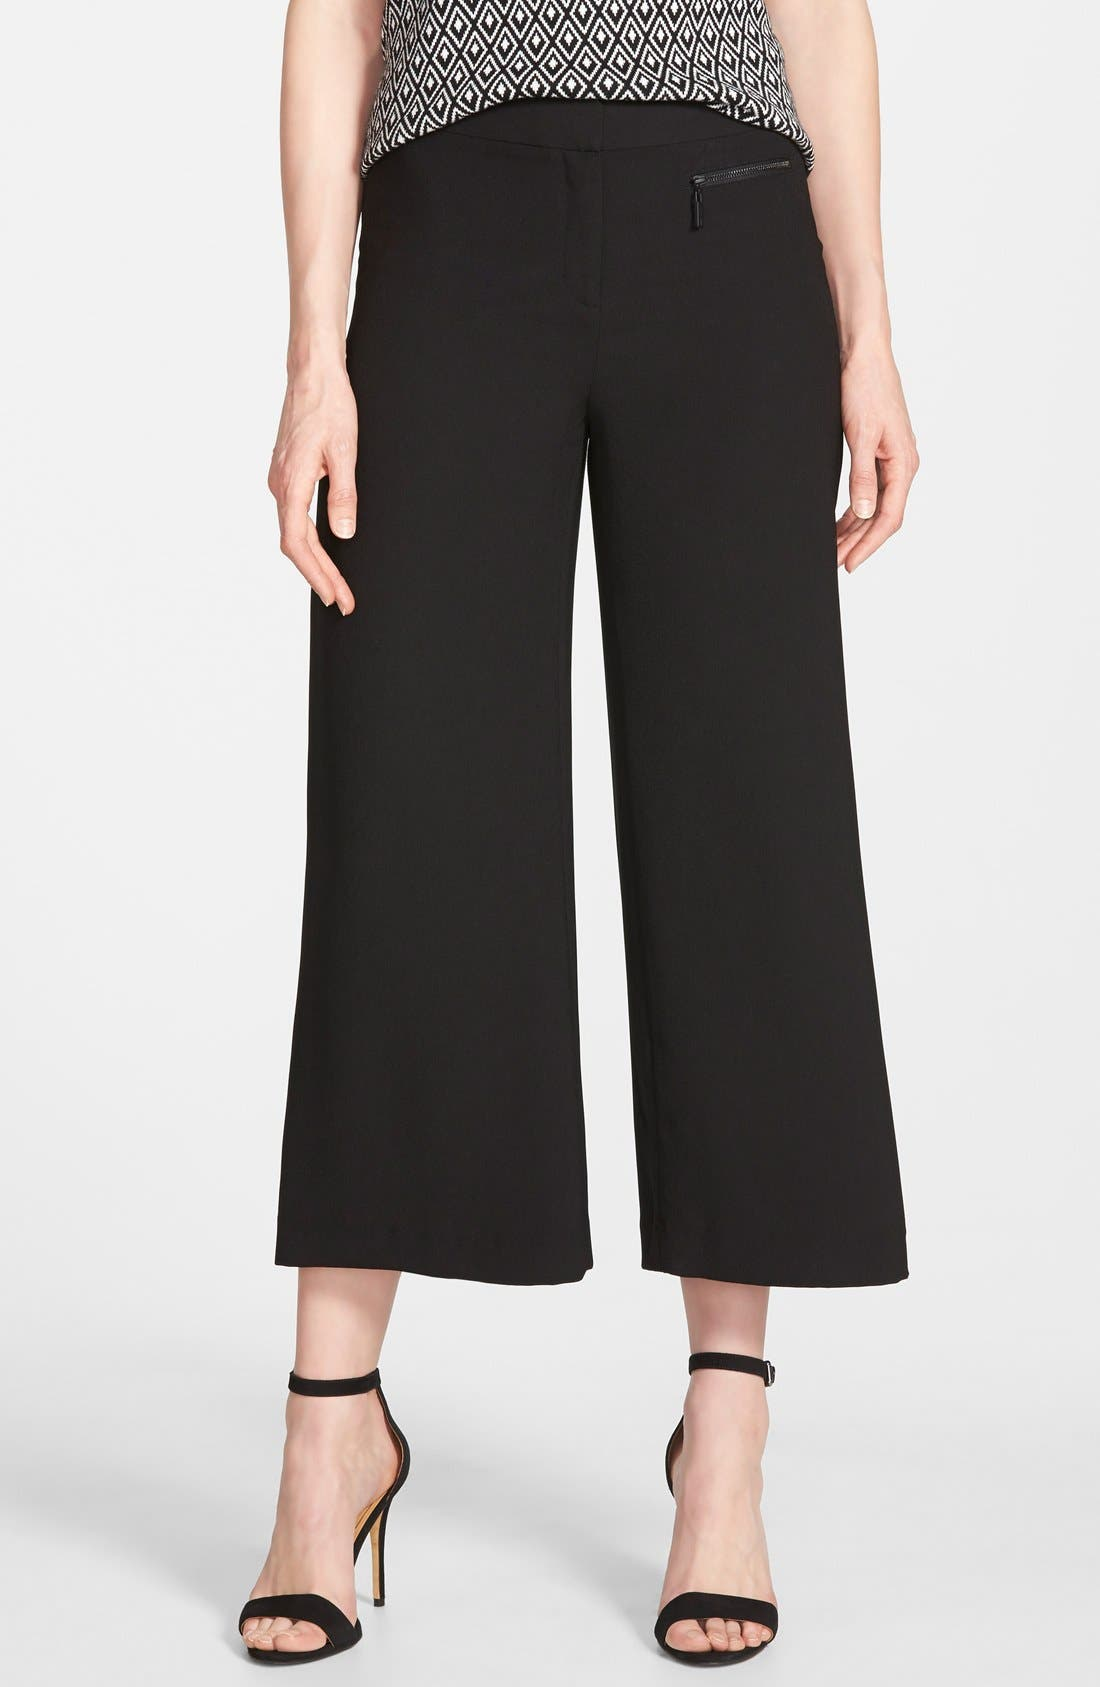 Main Image - Vince Camuto Zip Pocket Culottes (Nordstrom Exclusive)